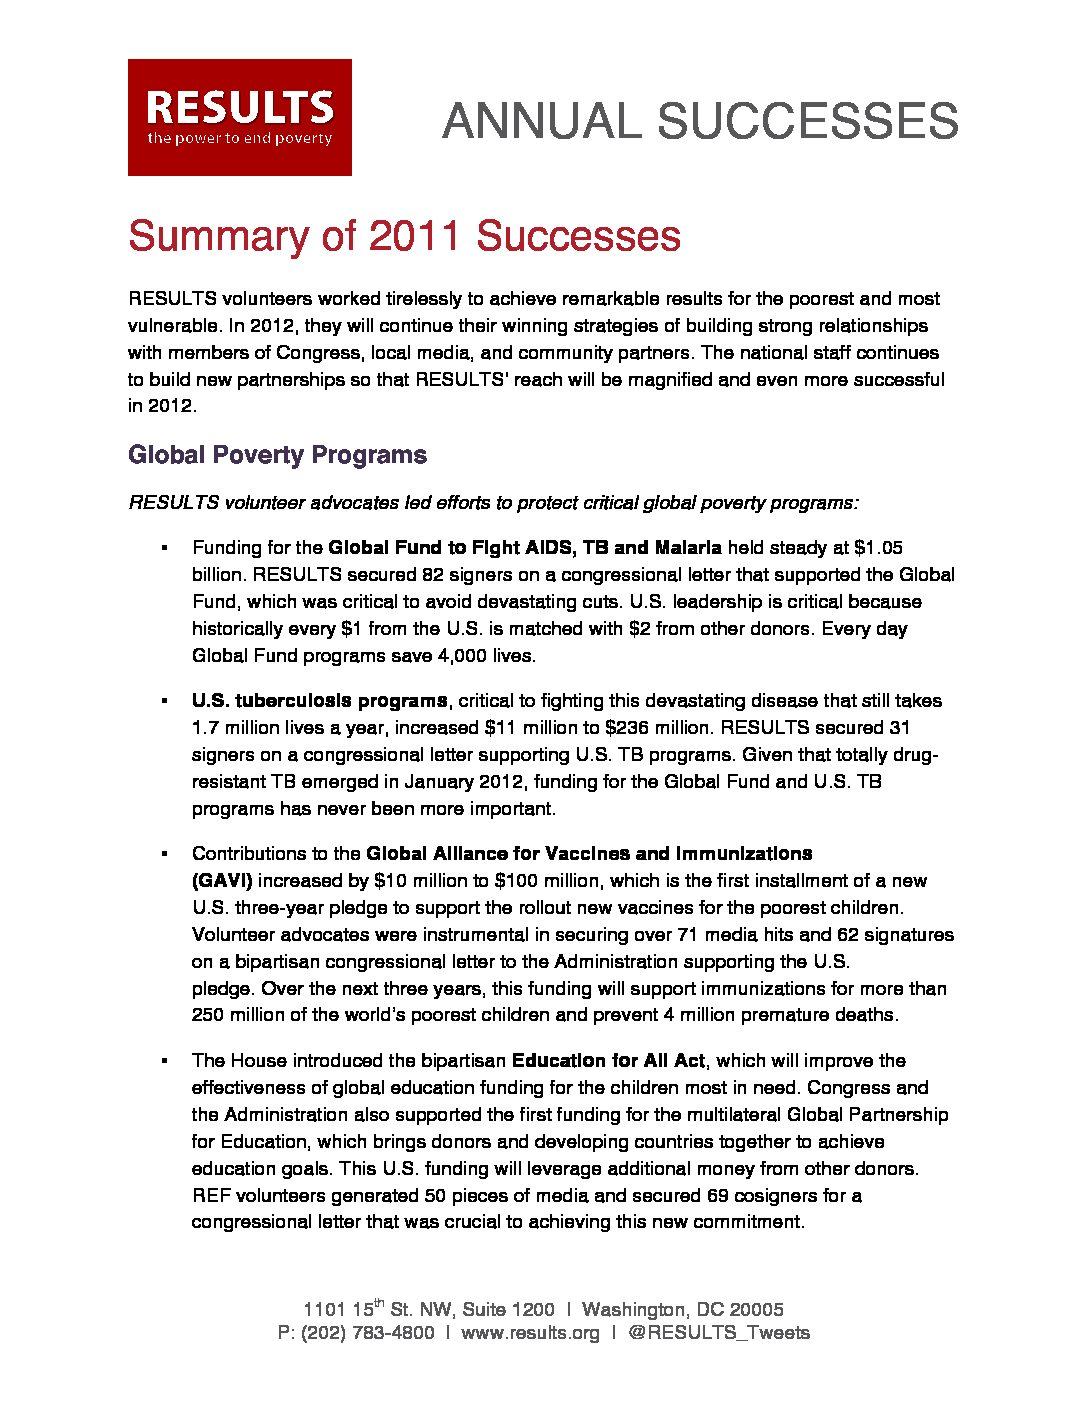 Annual Successes 2011